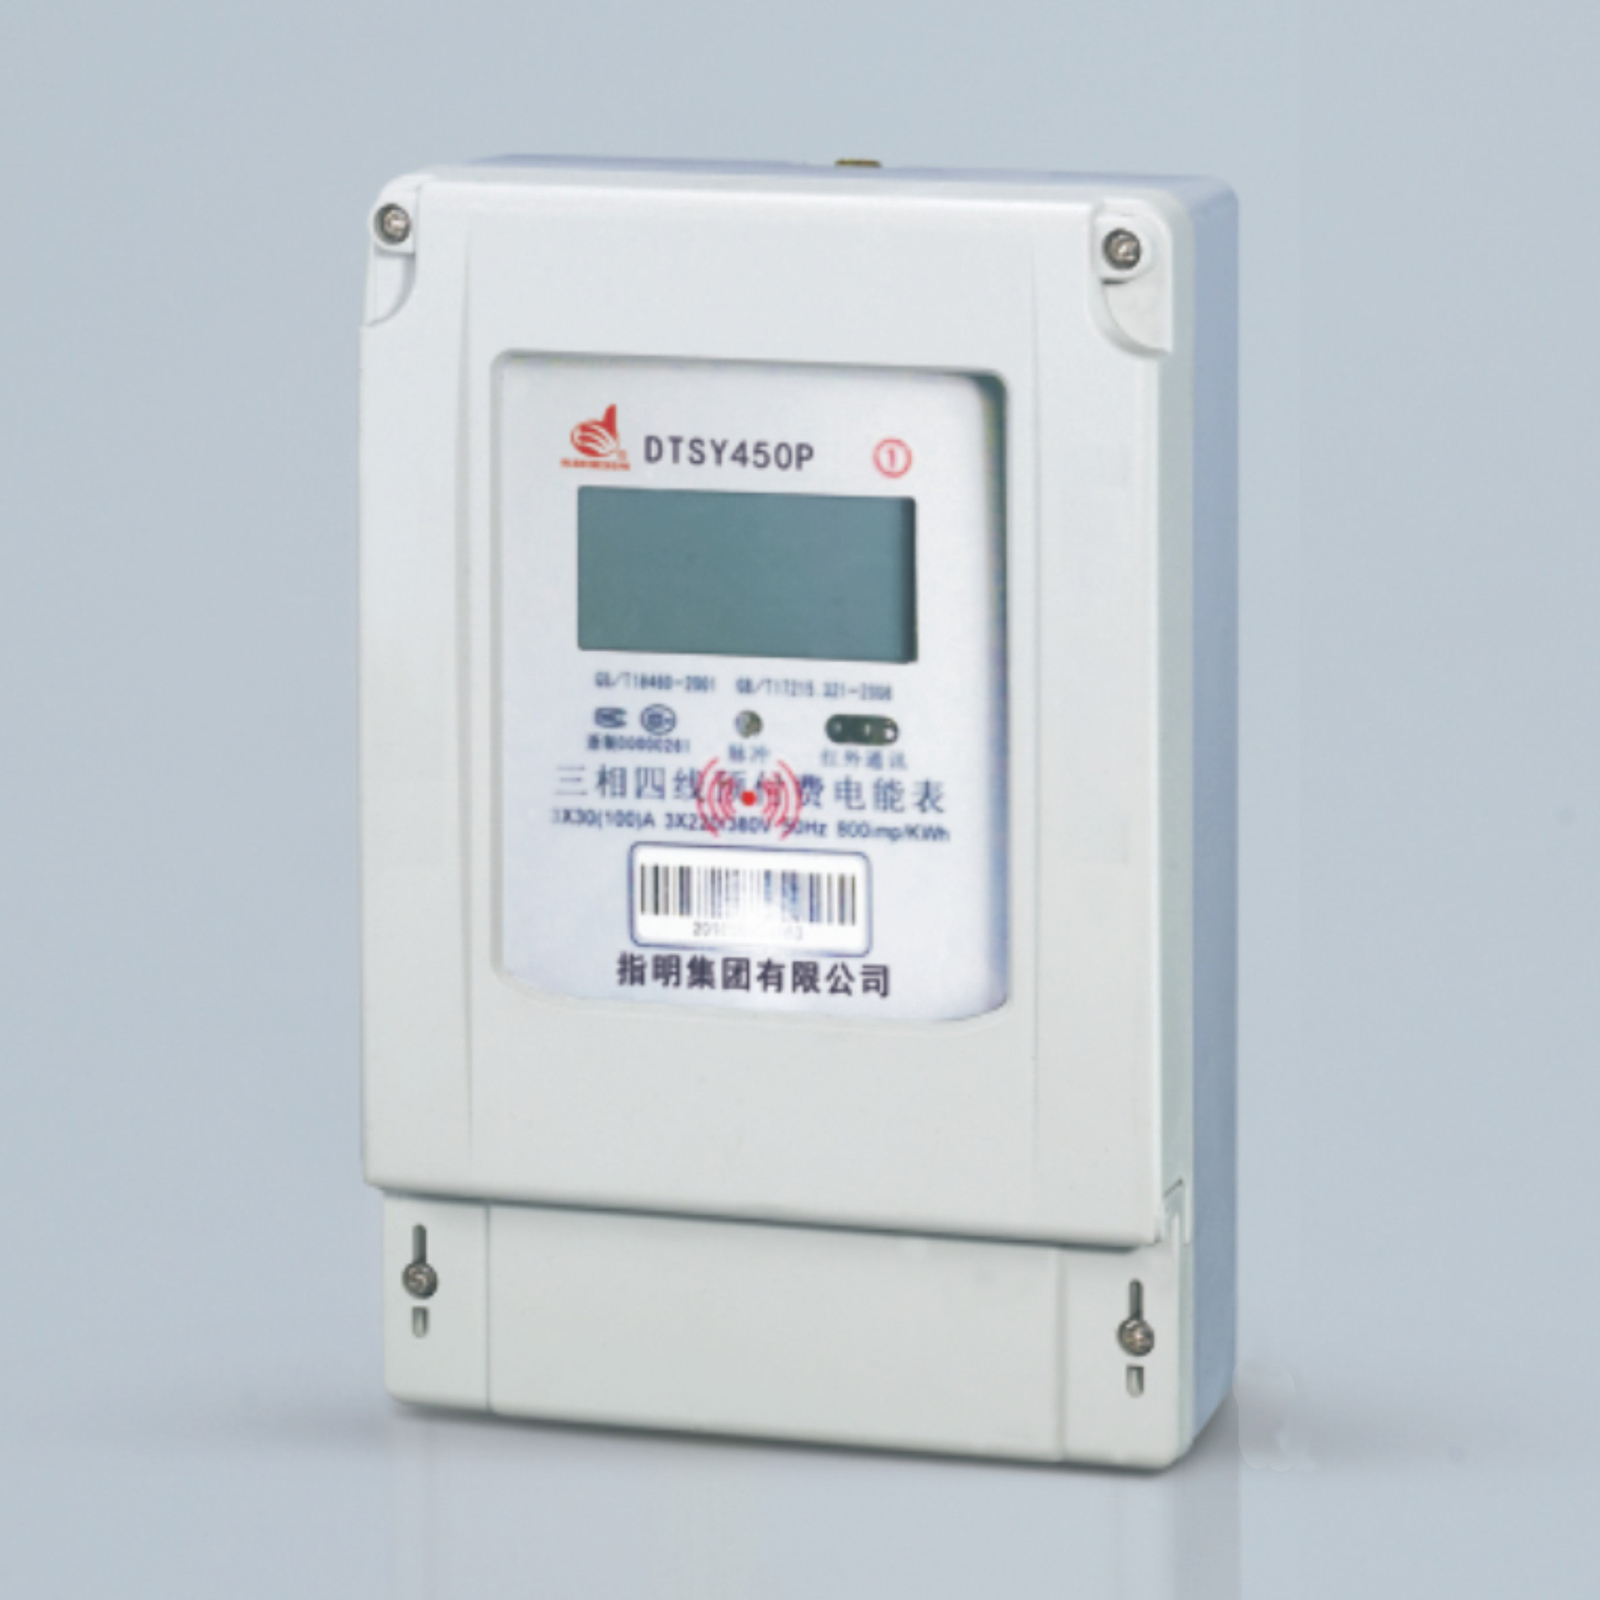 DTSY450P, DSSY450P Three phase electronic prepaid energy meter with RFID card